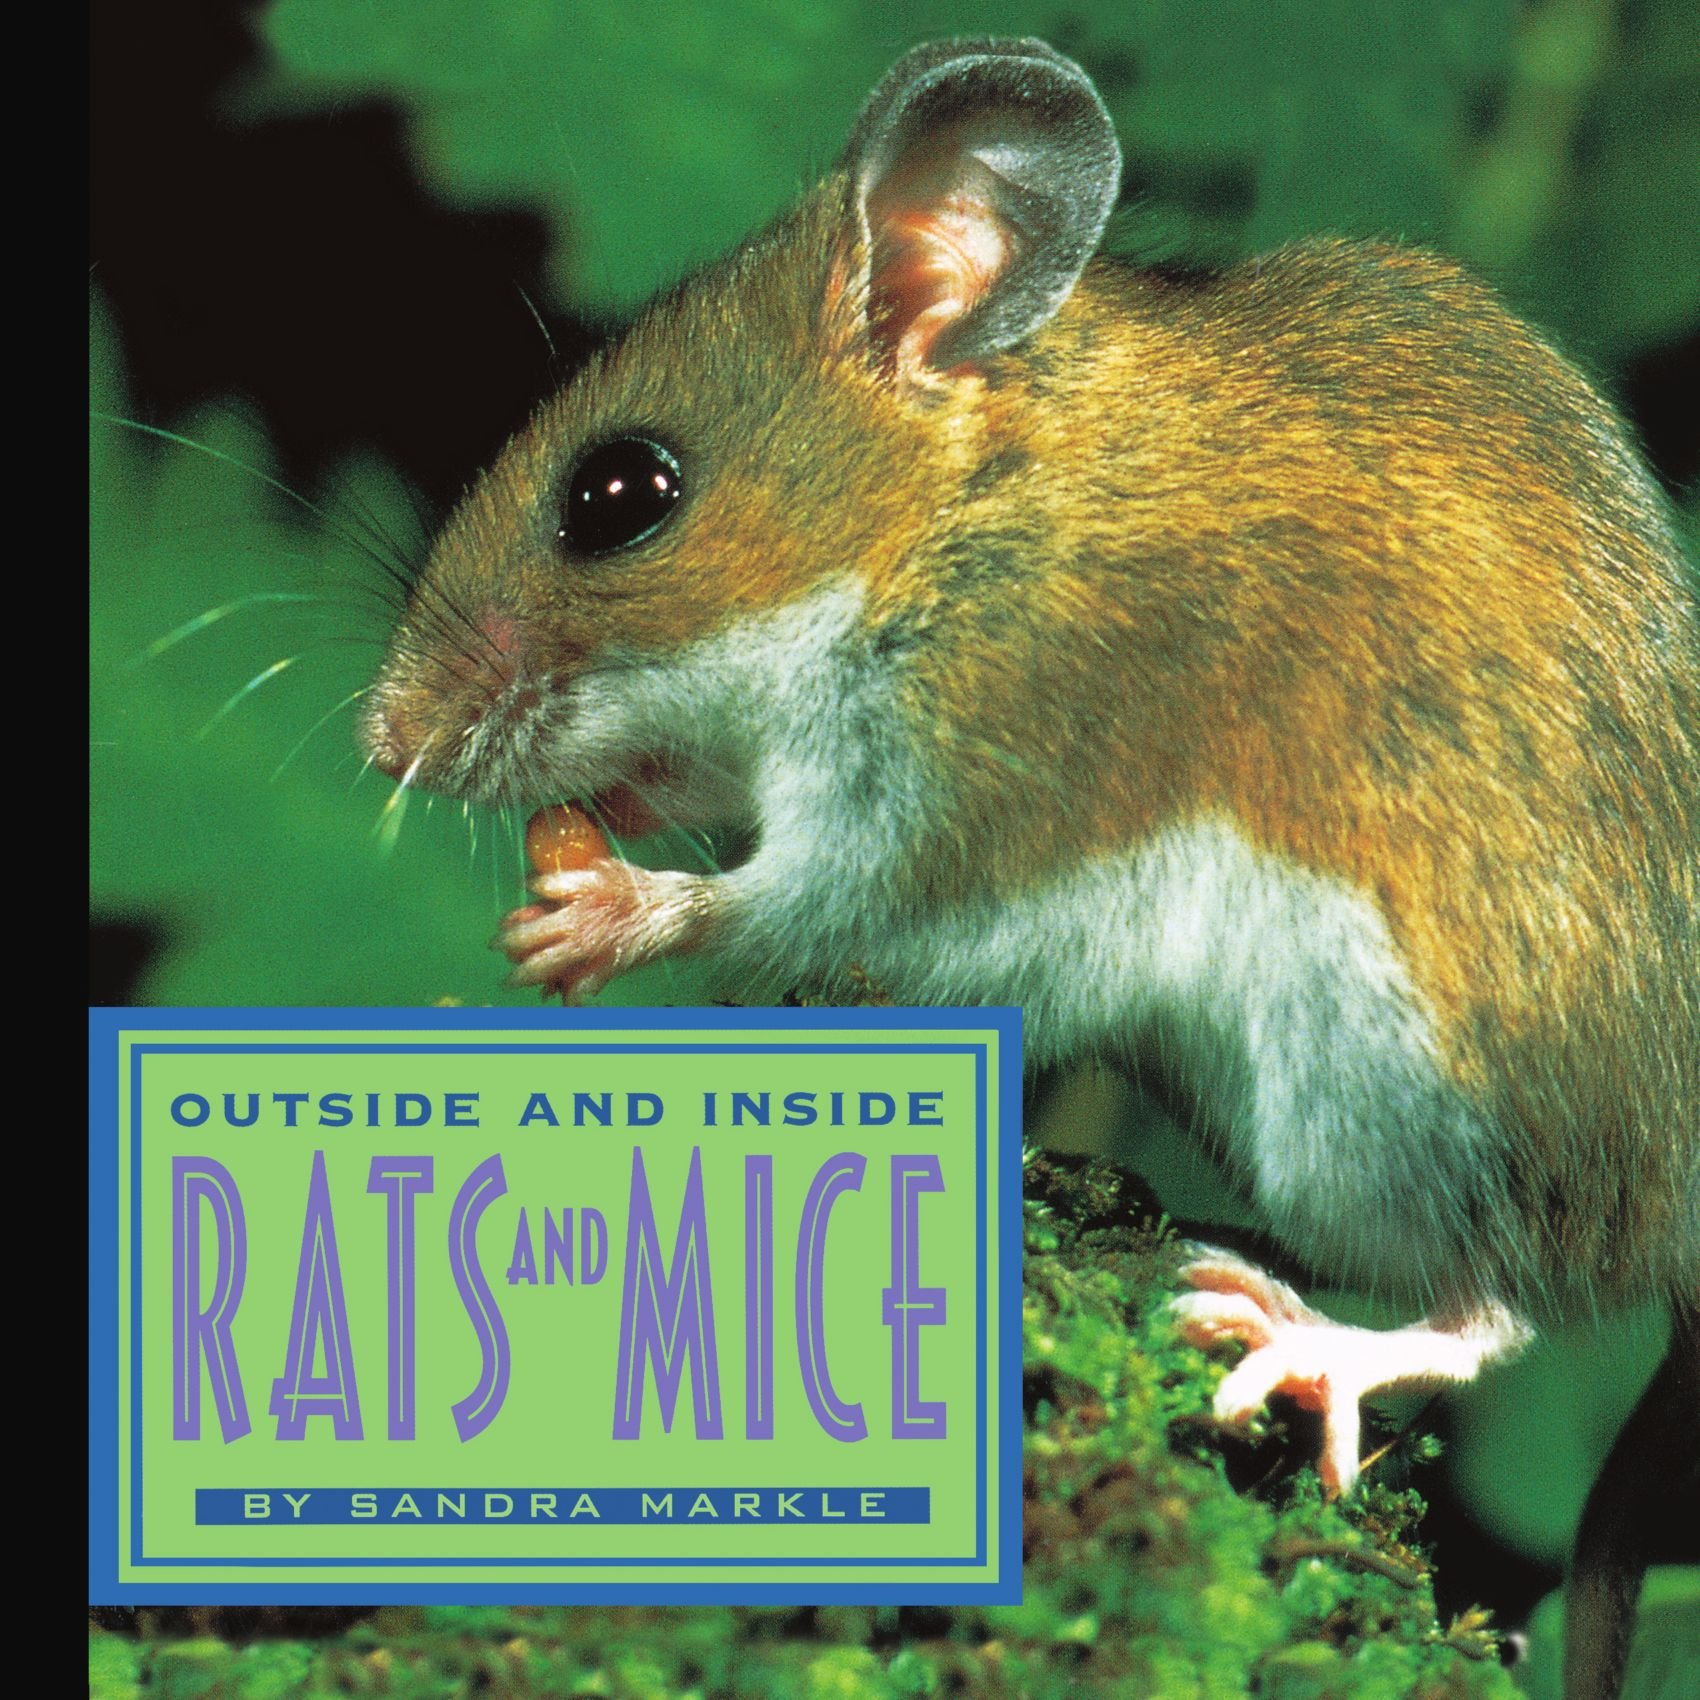 Outside and Inside Rats and Mice pdf